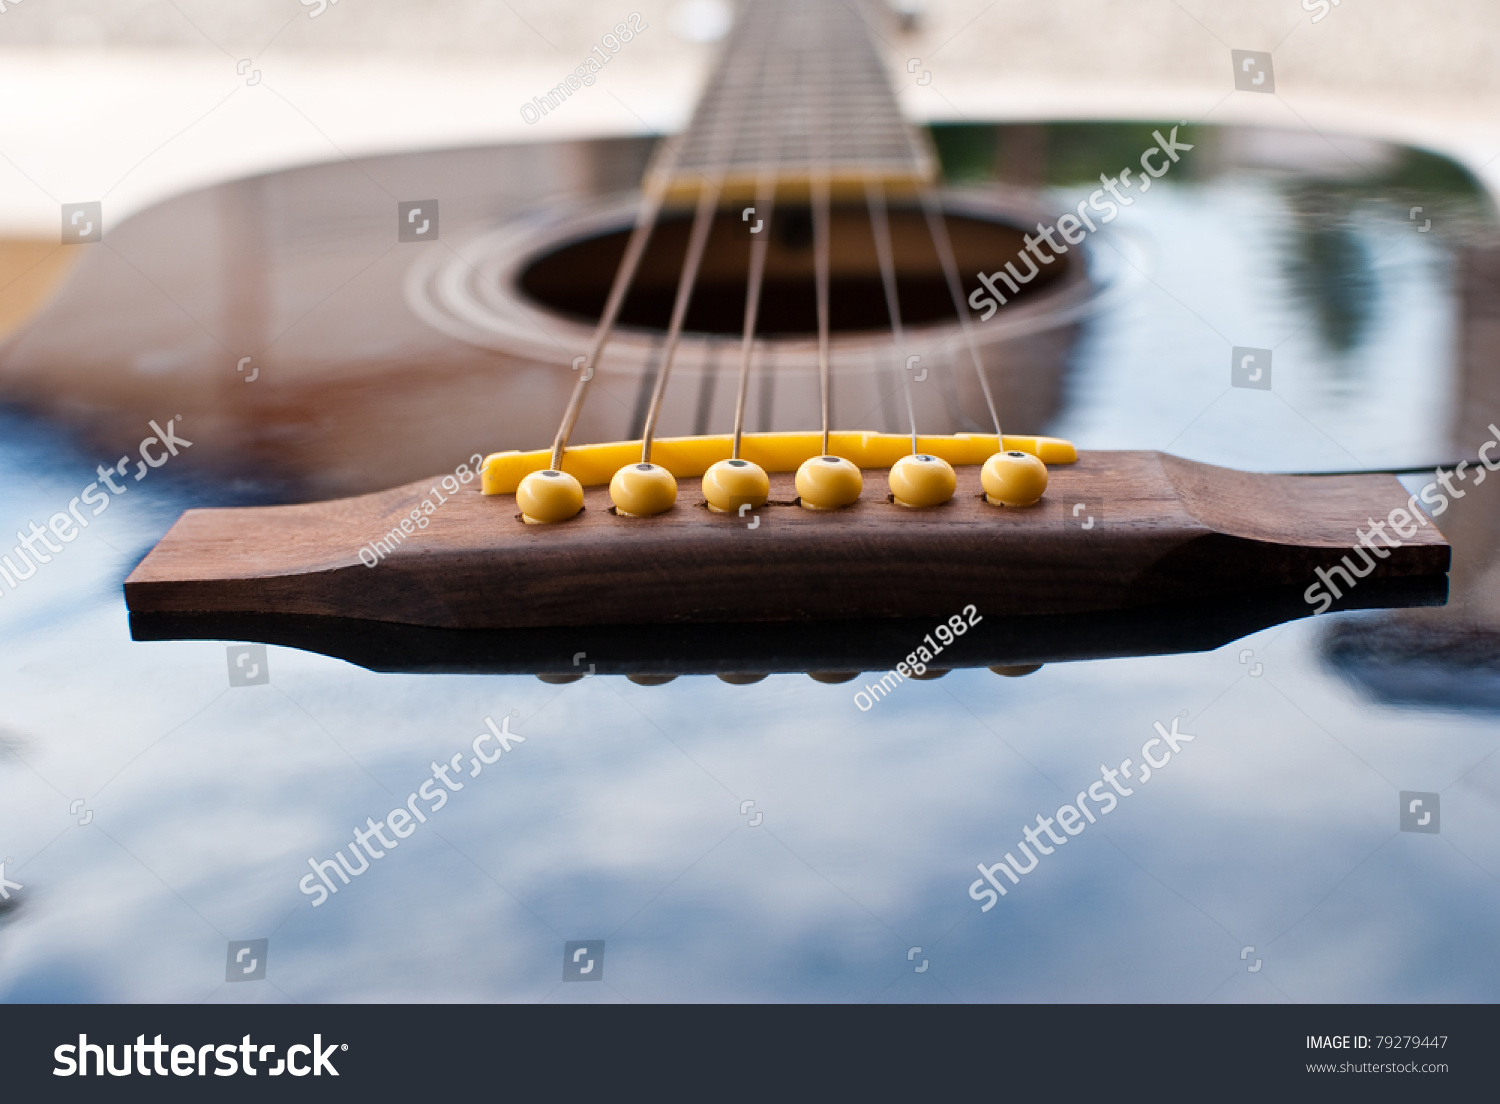 Detail Classic Acoustic Guitar Stock Photo 79279447 Shutterstock